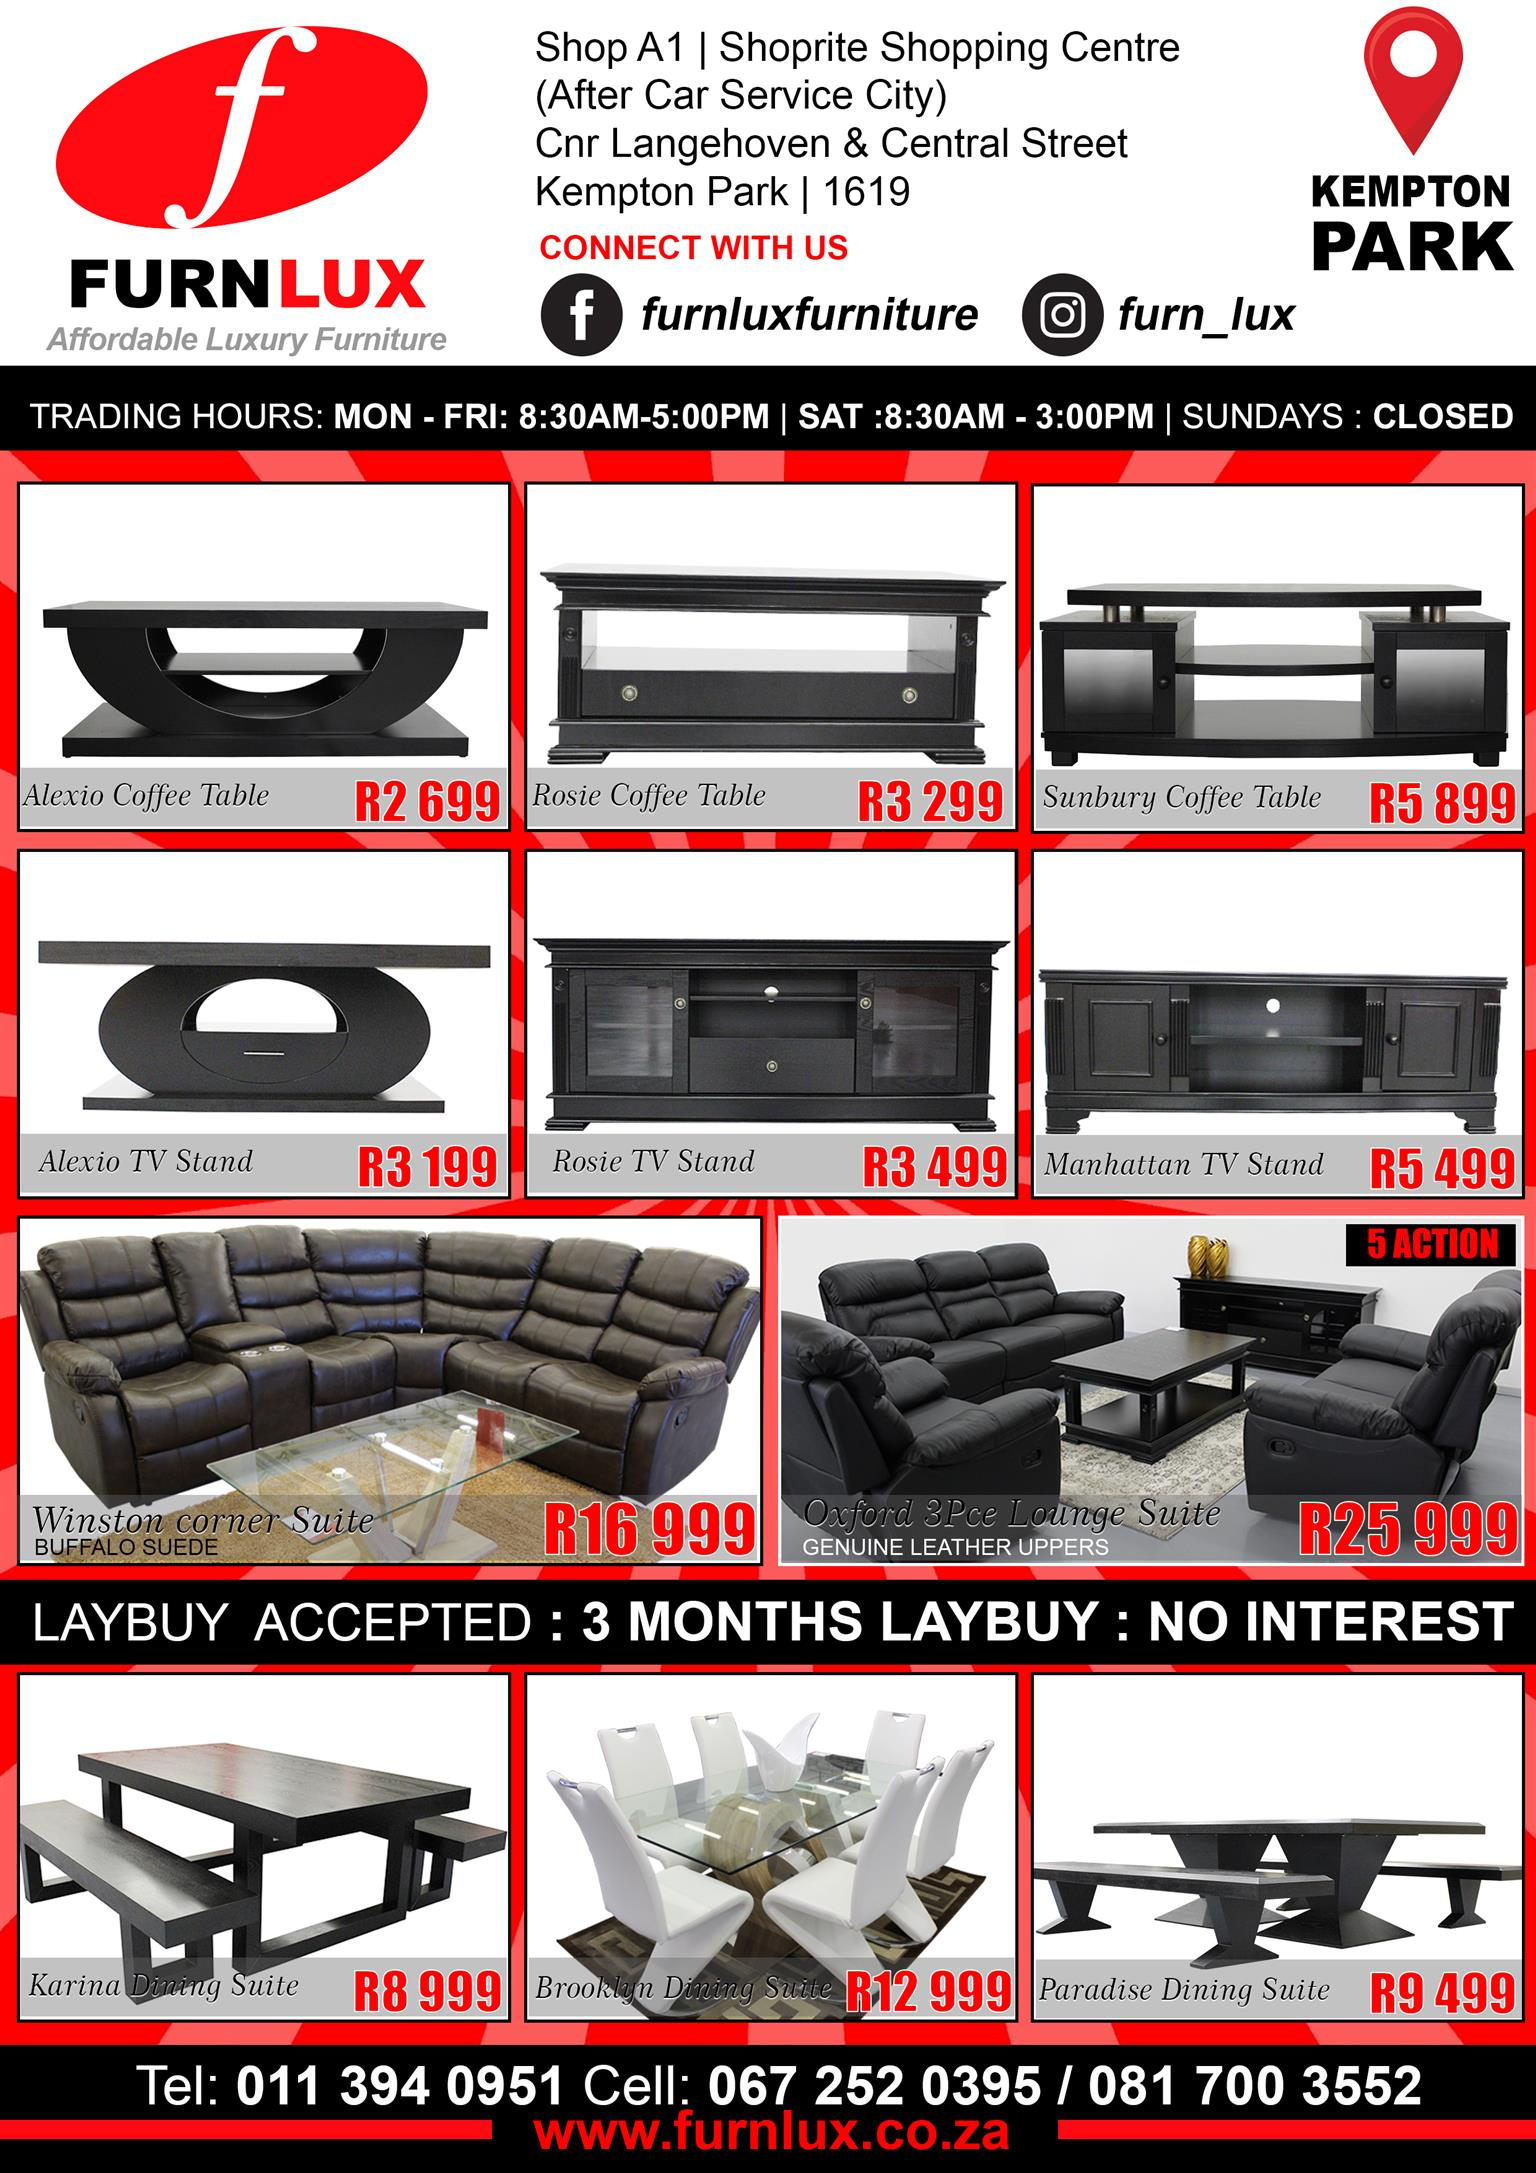 DINING SUITE BRAND NEW !!!!!! KARINA DINING SUITE FOR ONLY R8 999